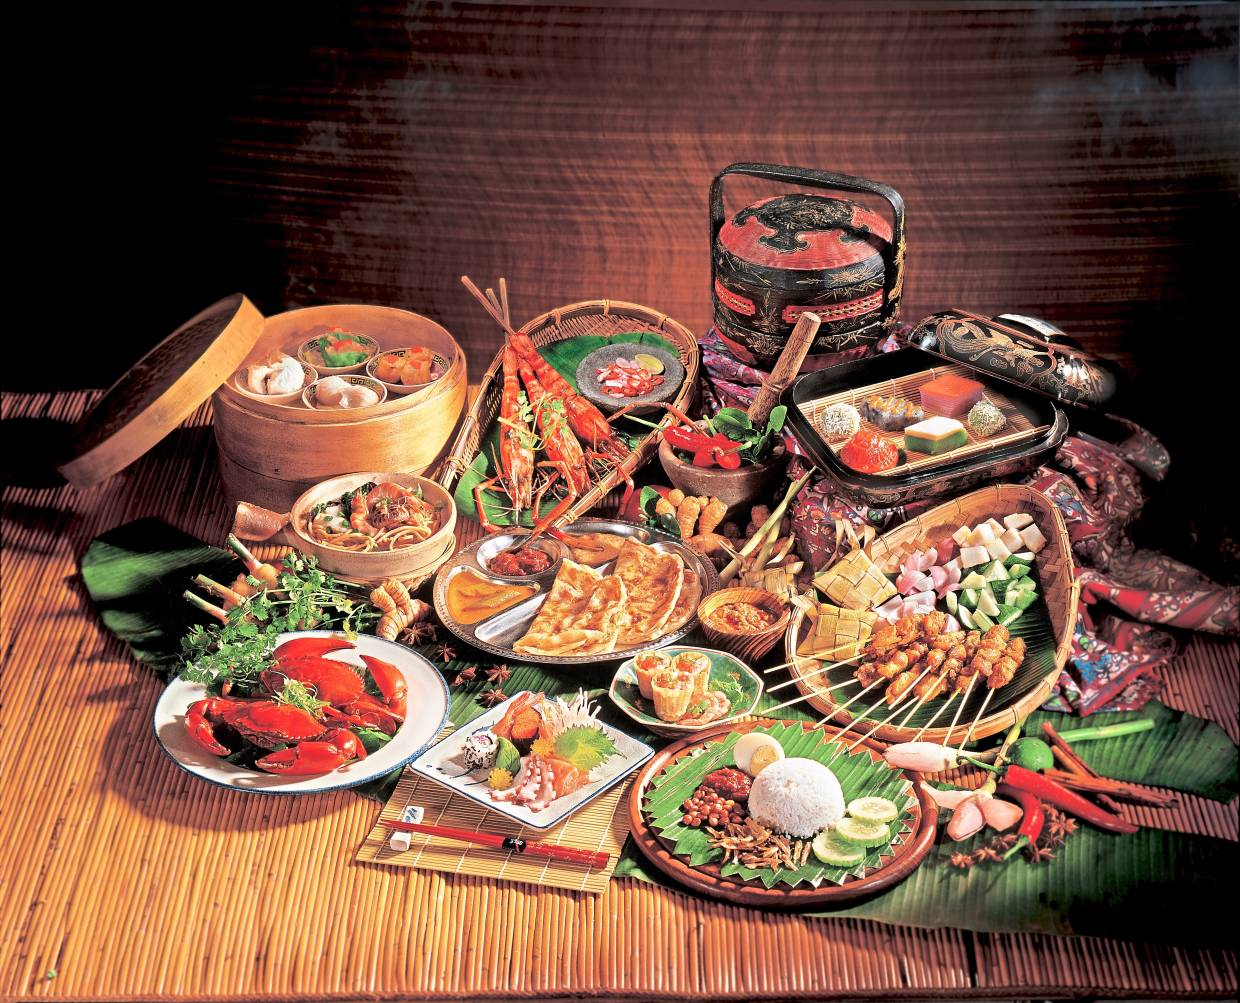 Malaysia's rich culture also includes a cornucopia of traditional food. You can learn to make some of these cuisines at a cooking class.